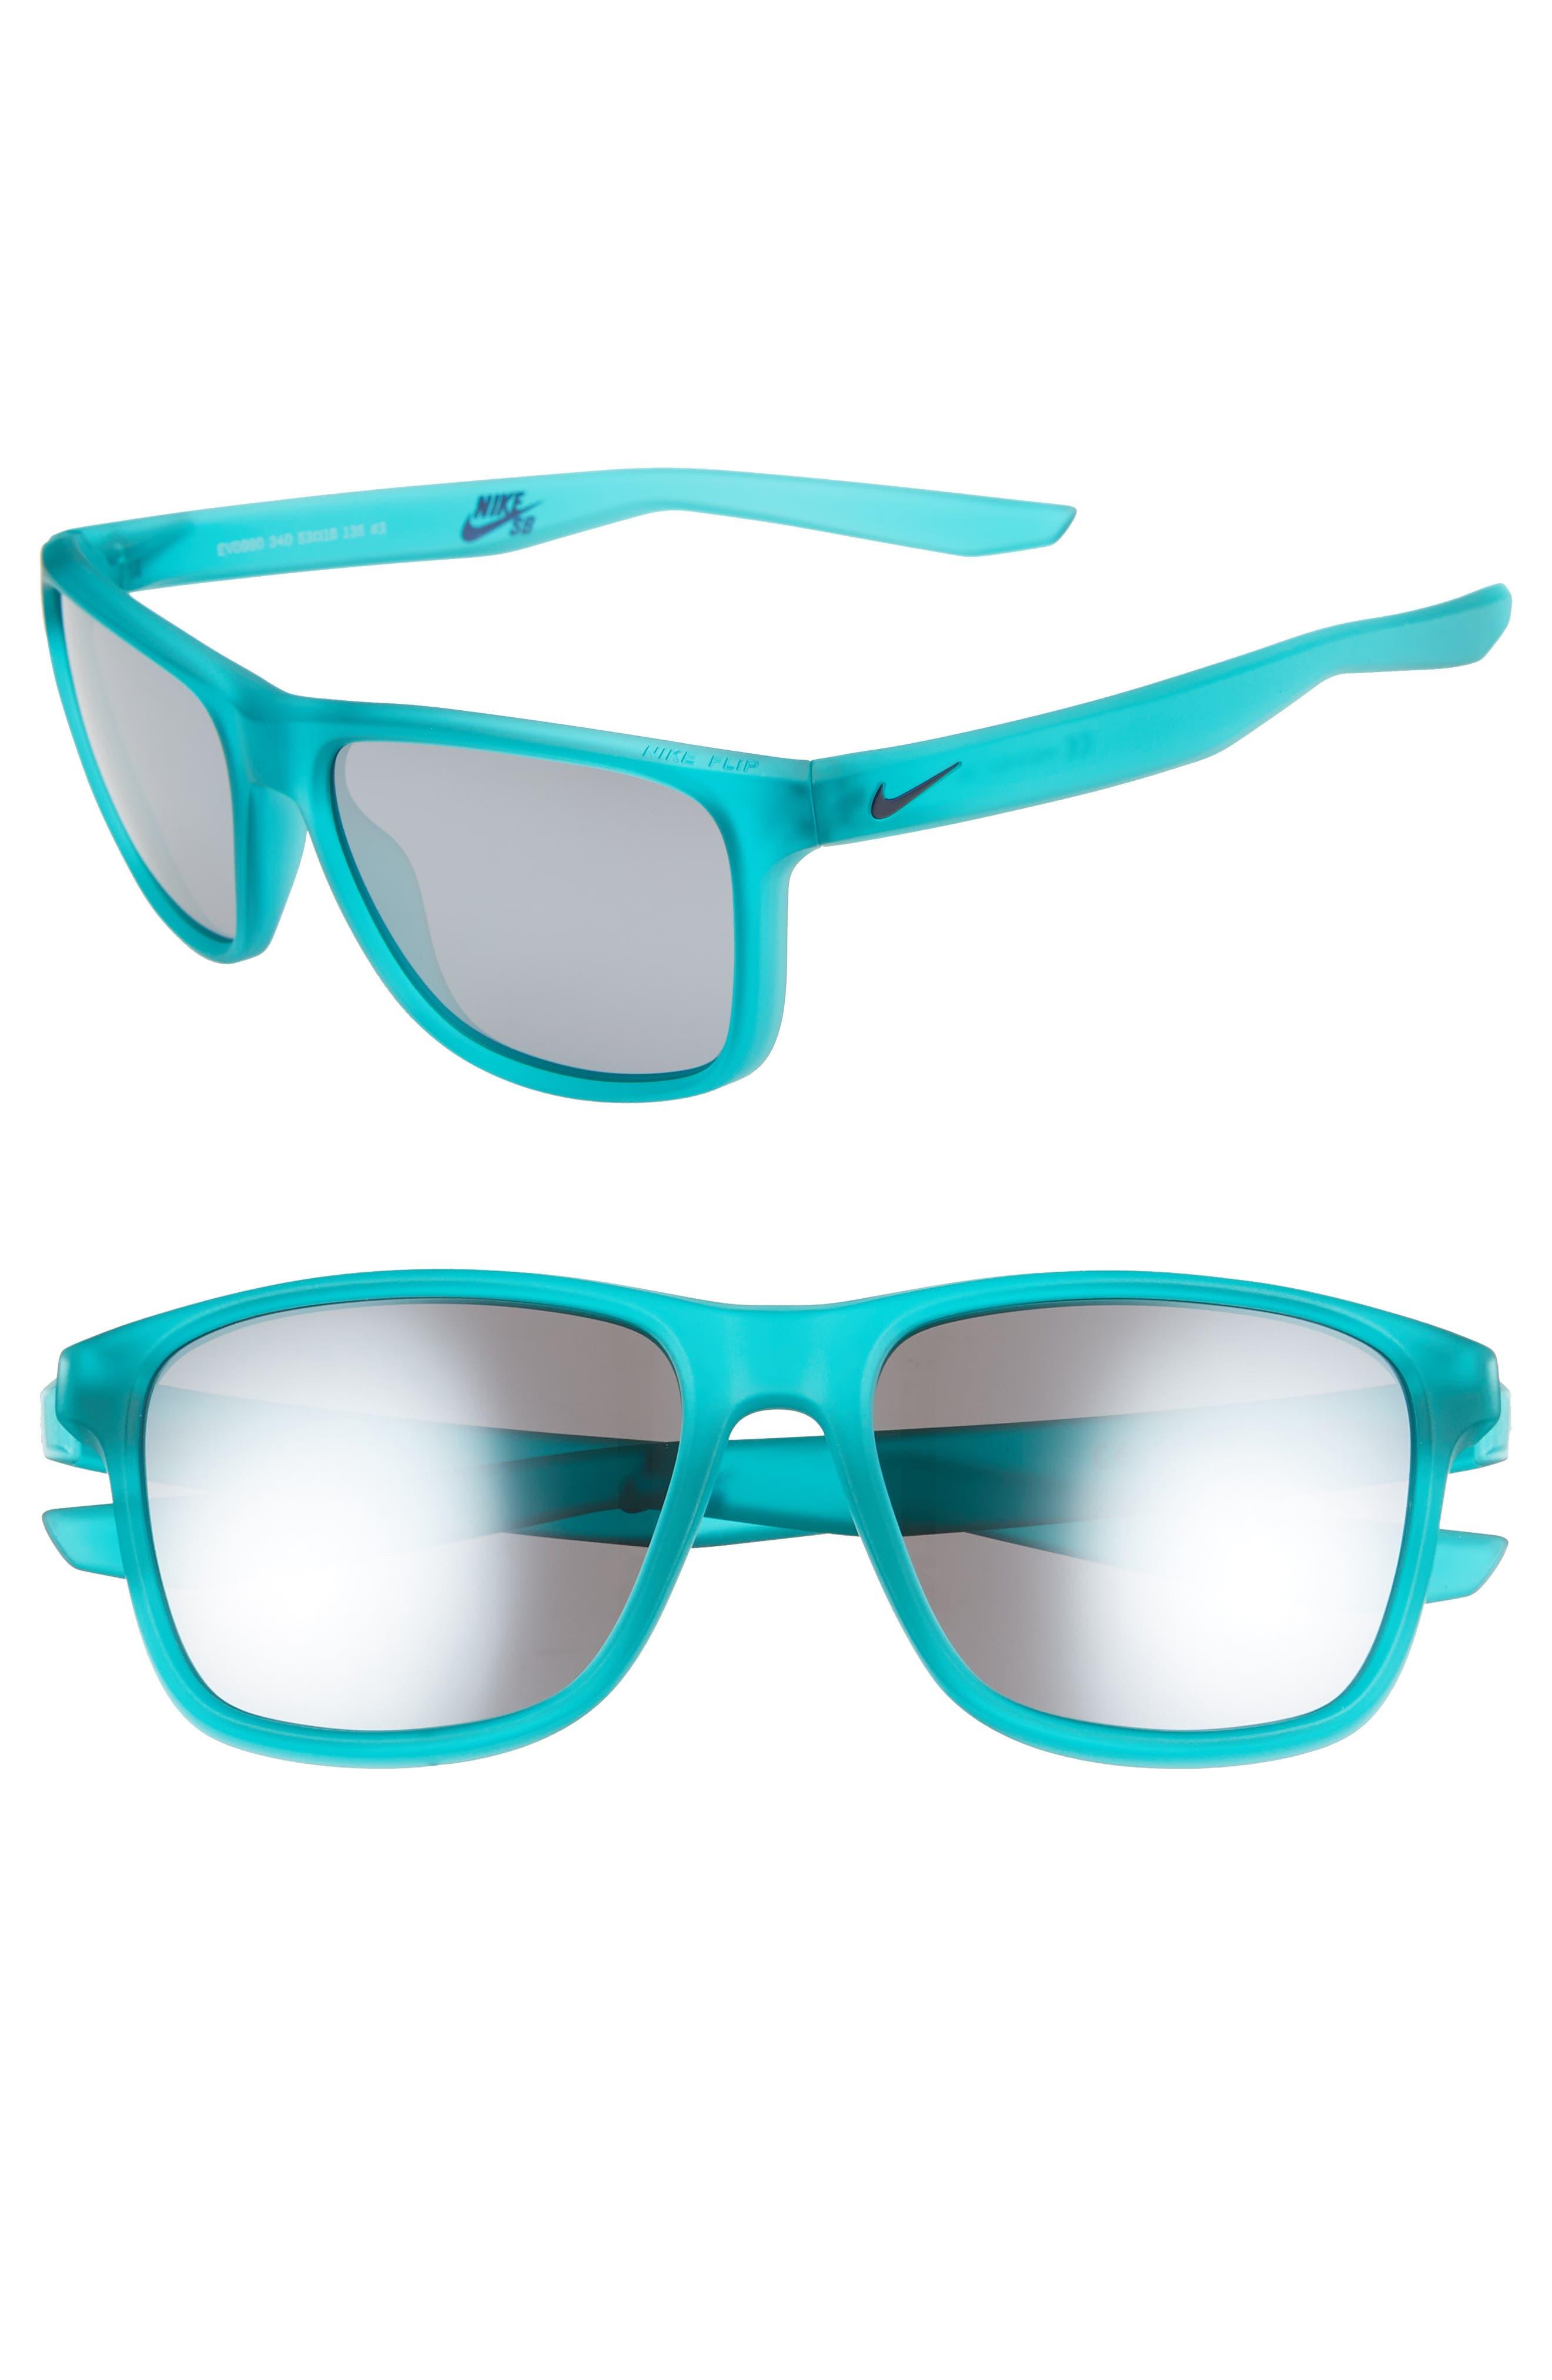 Nike Flip 5m Mirrored Sunglasses - Matte Clear Jade/ Grey